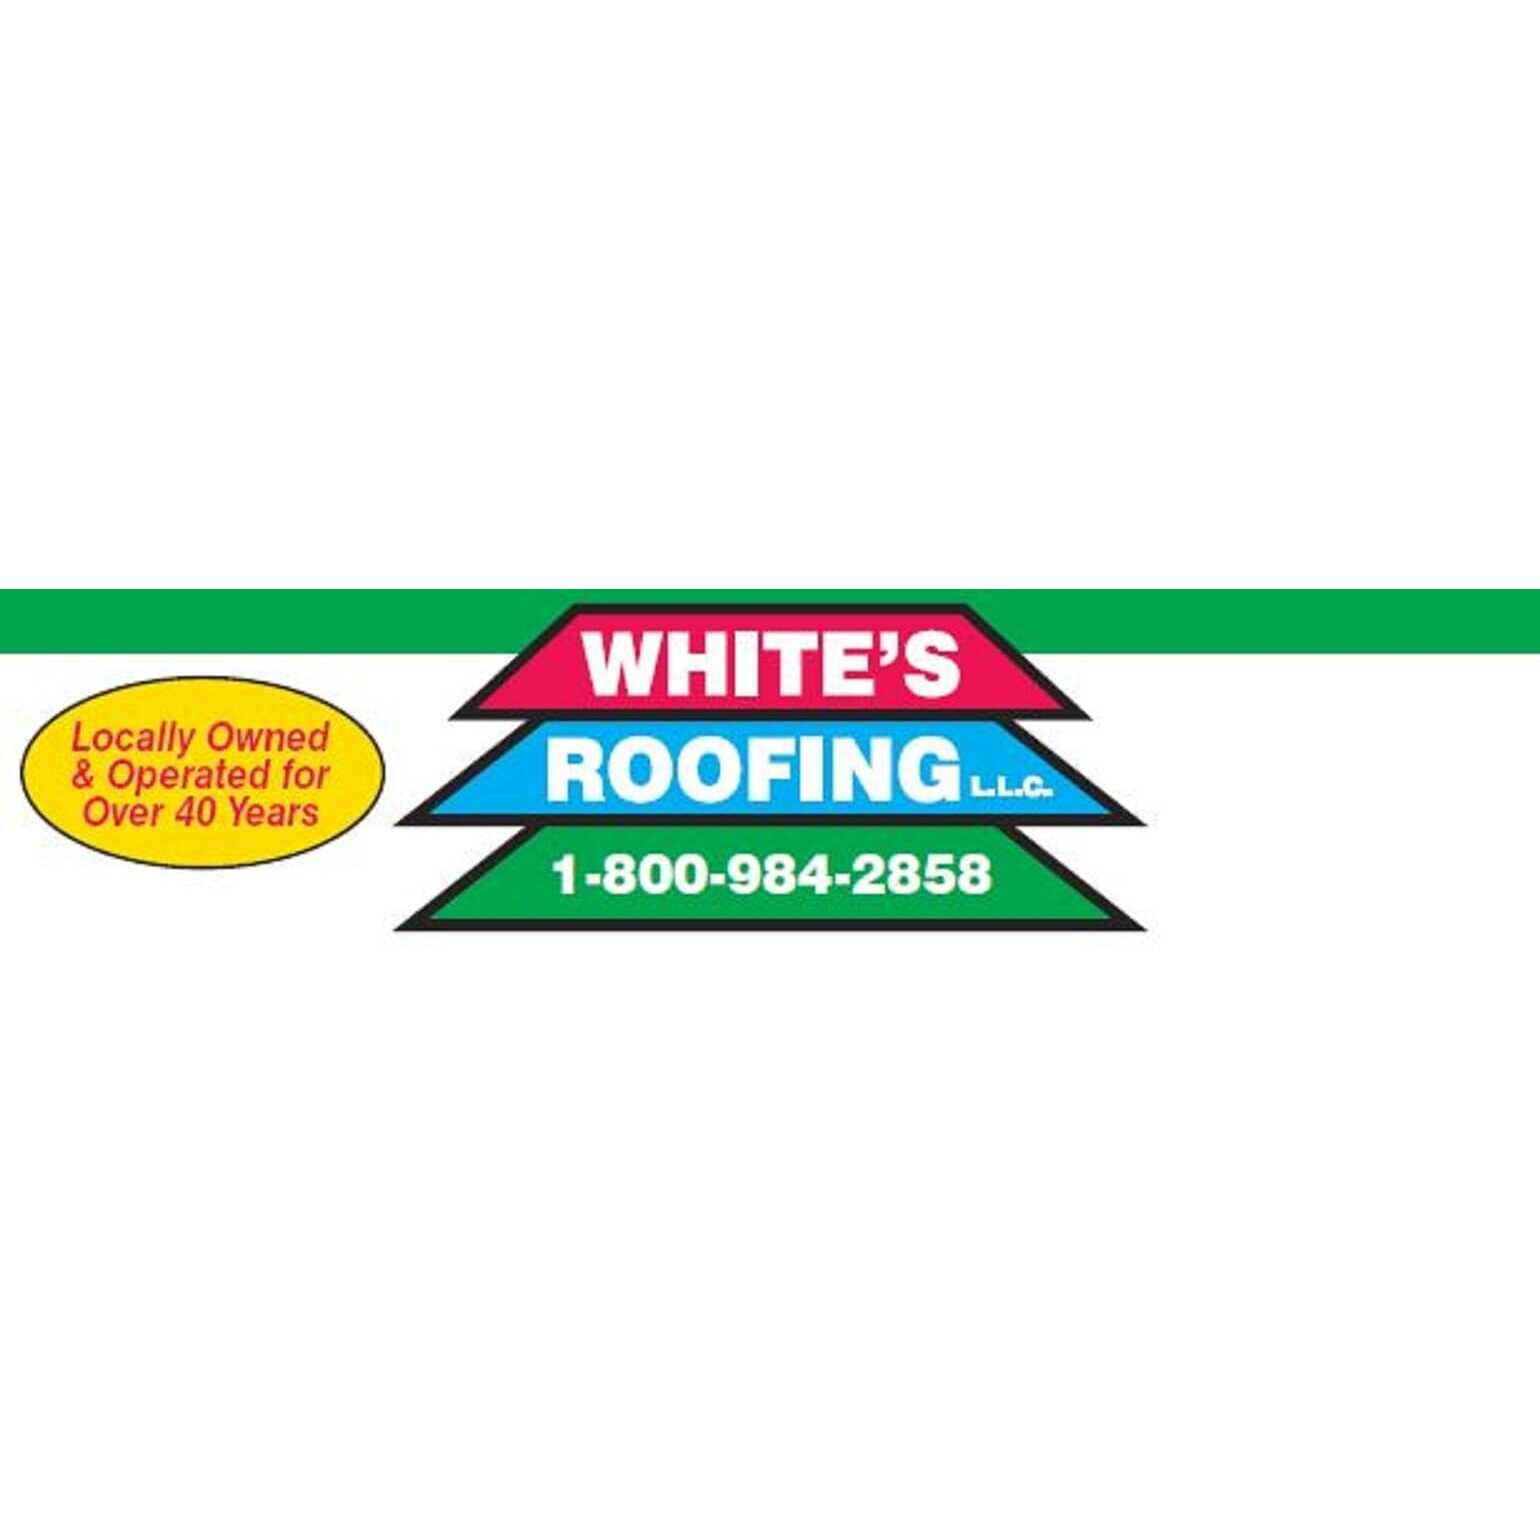 White's Roofing LLC